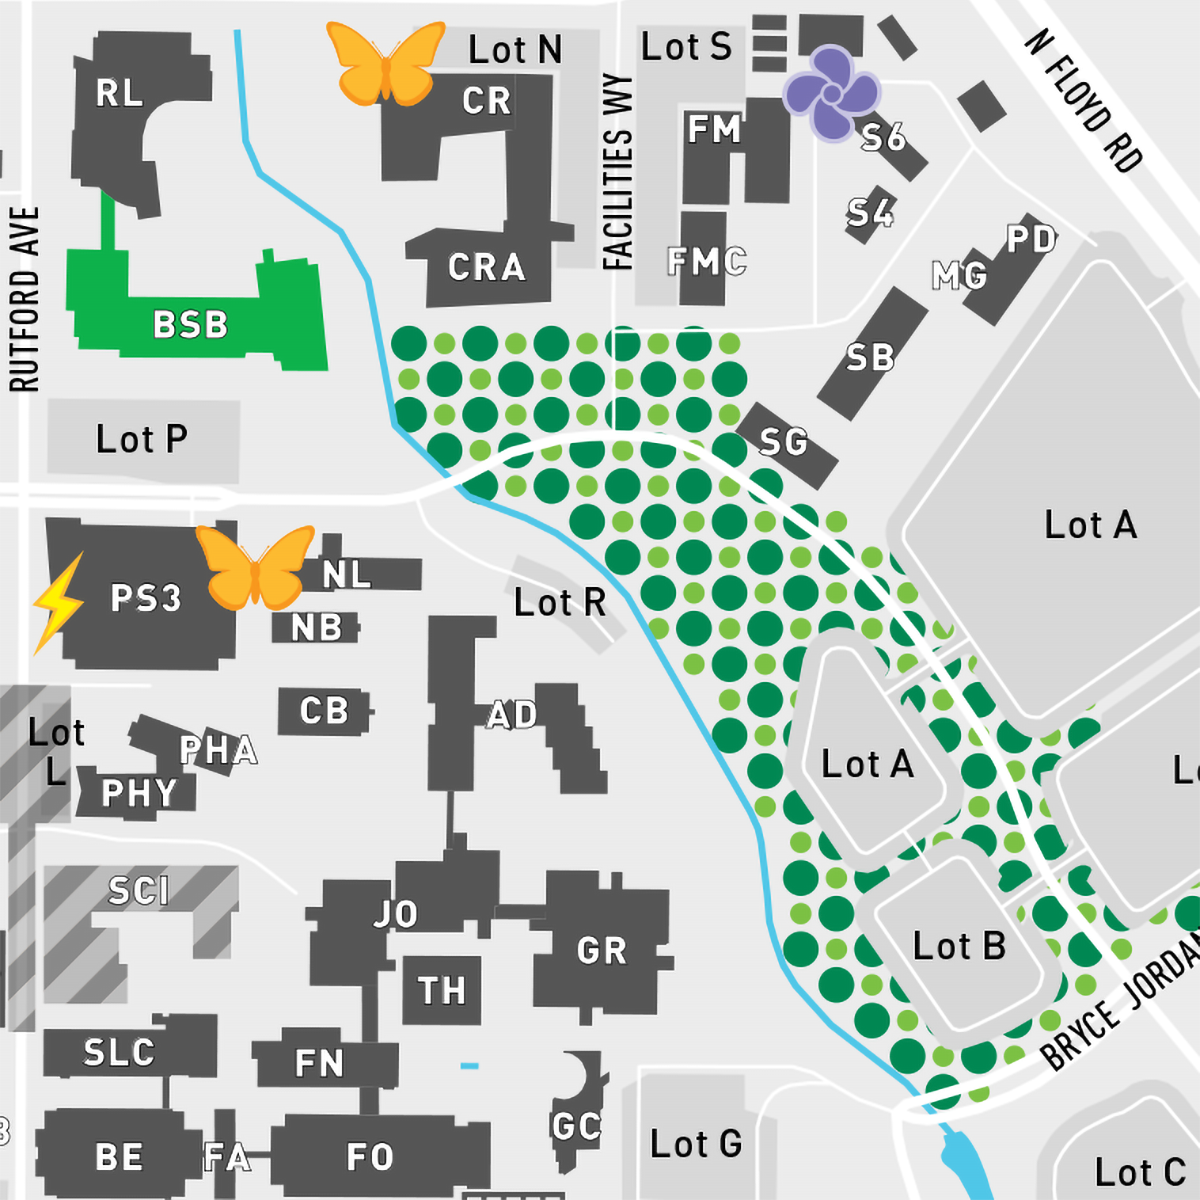 Our Green Campus - Download the Full-Size Map